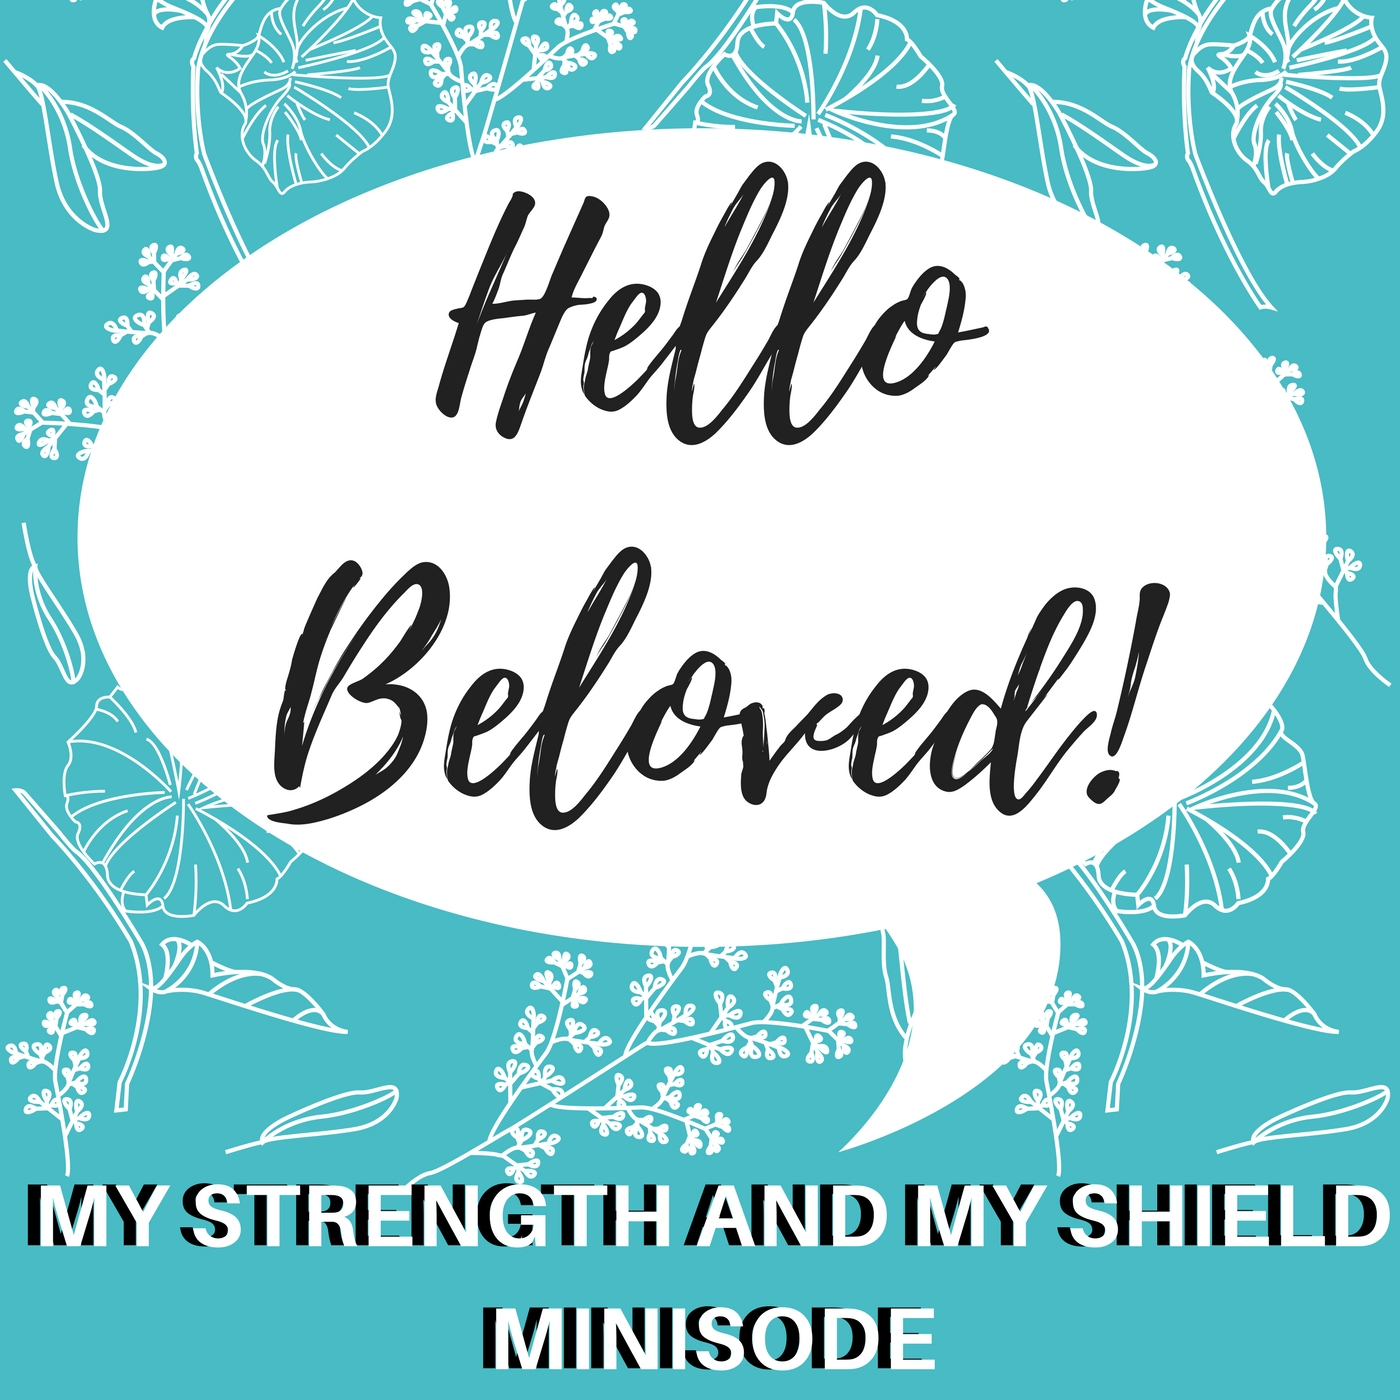 It's a Minisode! This is a new series that I will be adding to the podcast. It's a mix between church announcements and your big sis checking in on you.